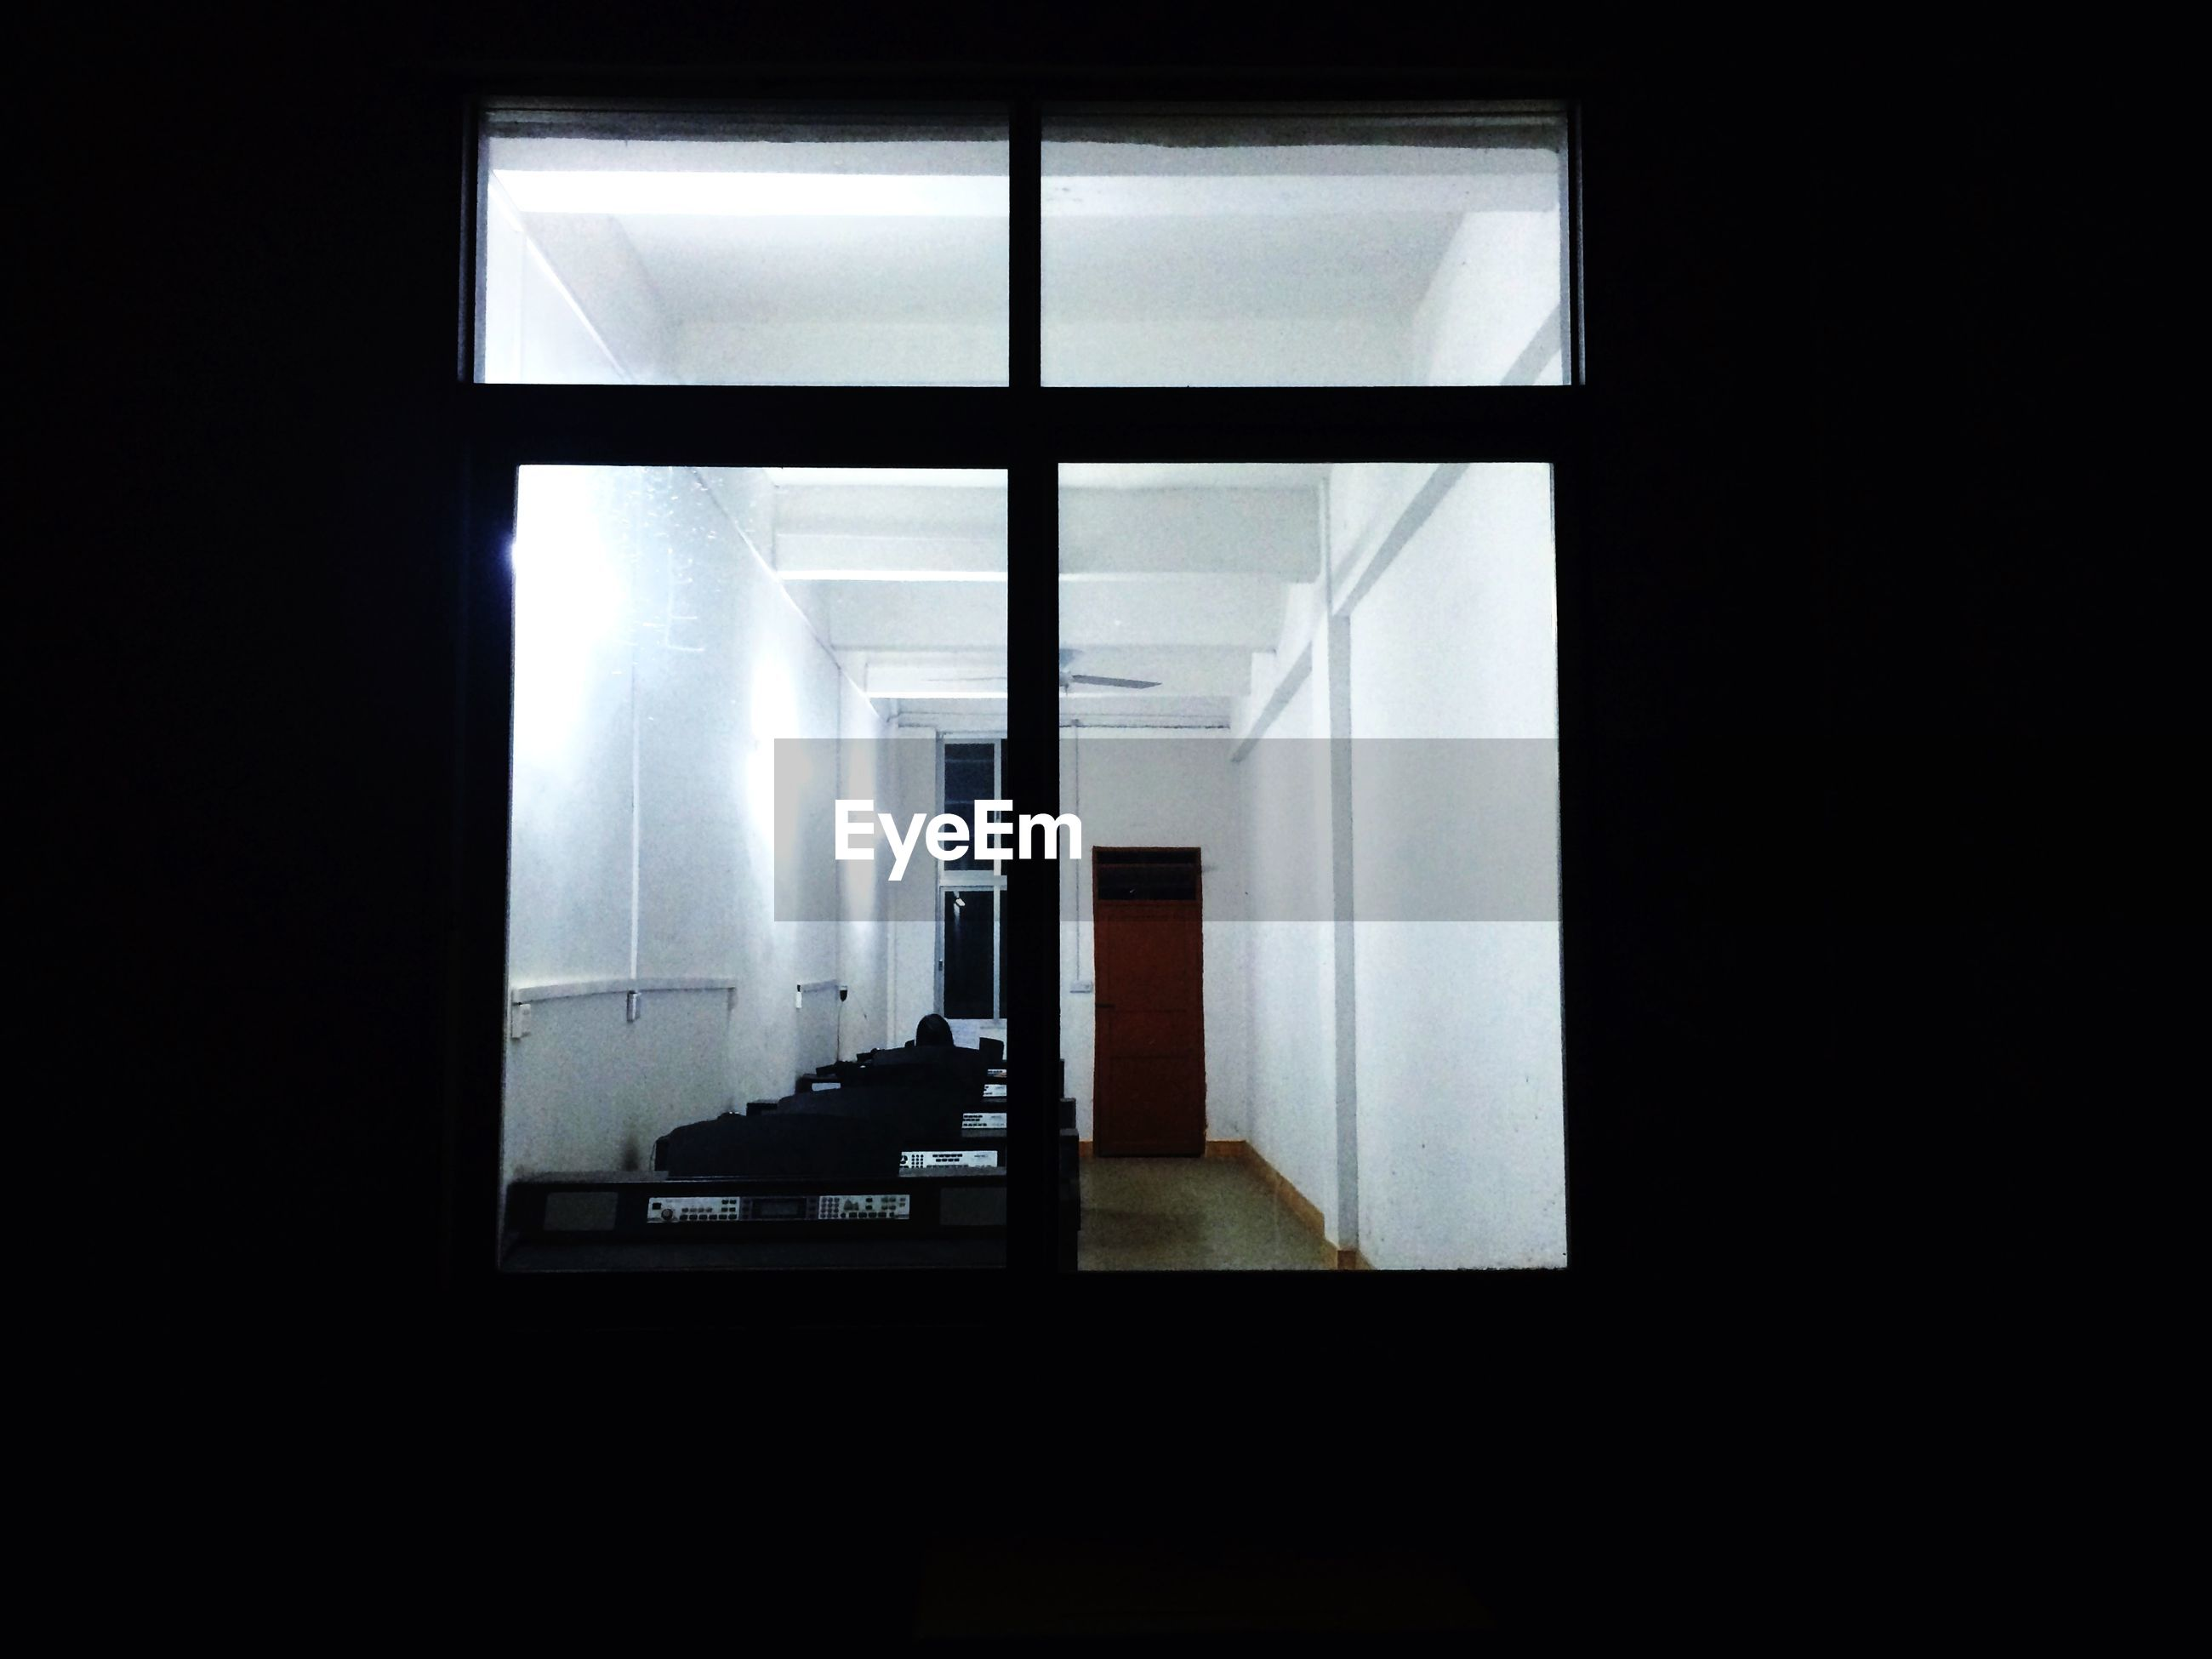 indoors, window, glass - material, architecture, built structure, transparent, home interior, reflection, dark, modern, curtain, absence, day, no people, sunlight, office, domestic room, house, copy space, silhouette